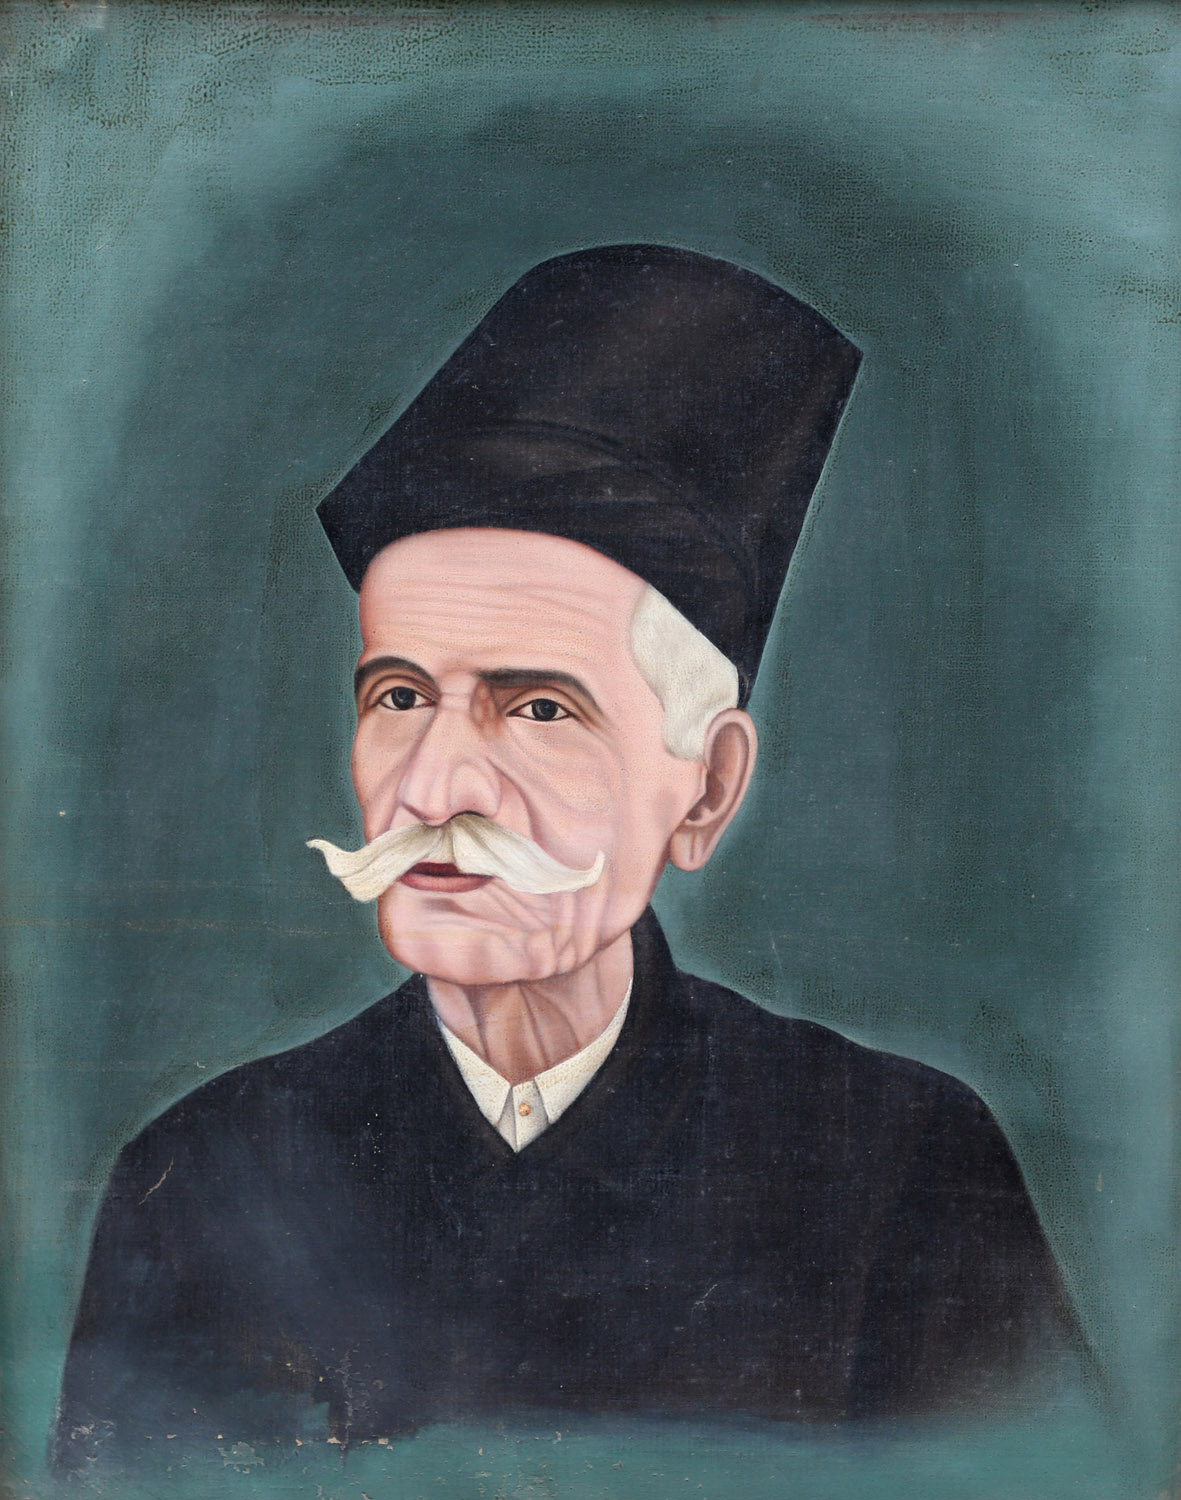 Mr. Manekjee Cursetjee